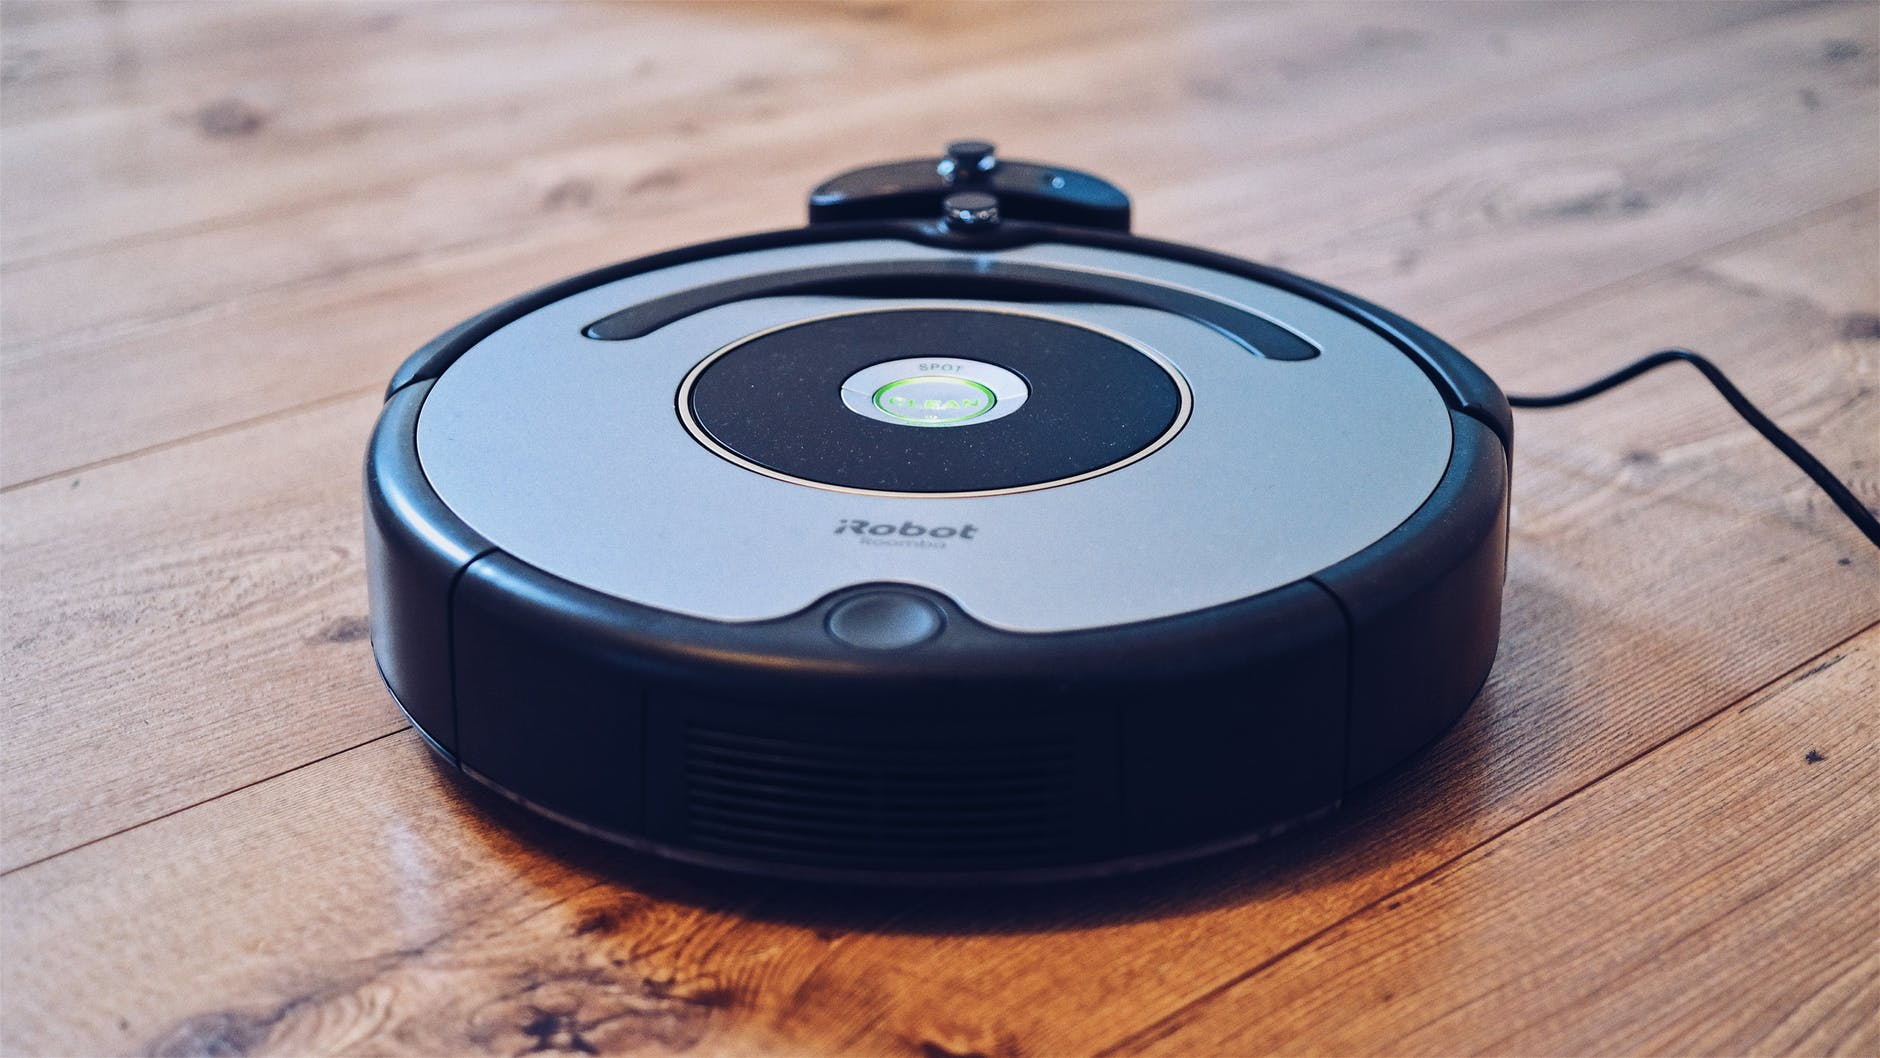 Roomba vacuum on wood floor